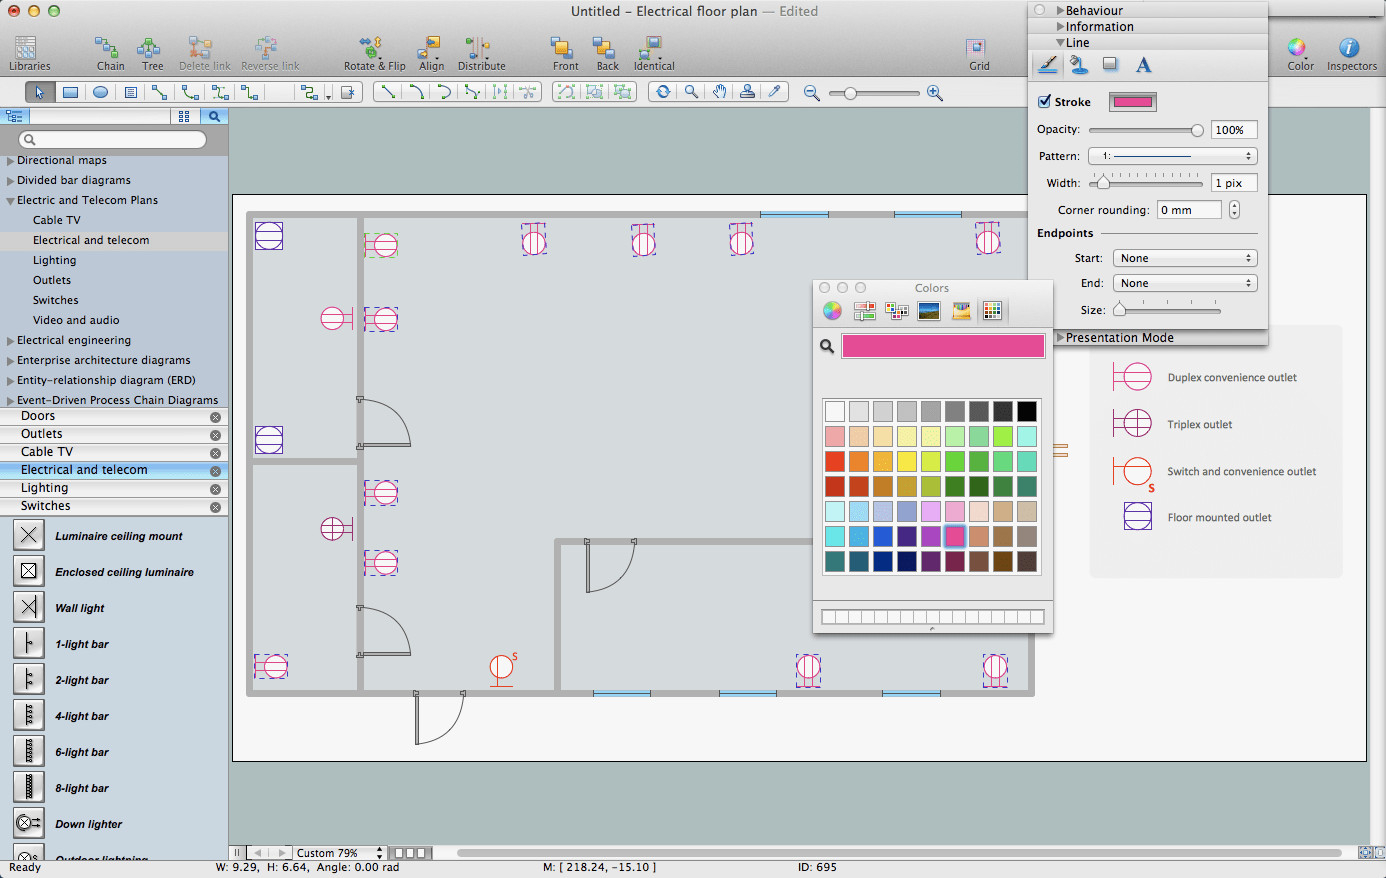 Home Wiring Plan   Wiring Library - Home Wiring Diagram Software